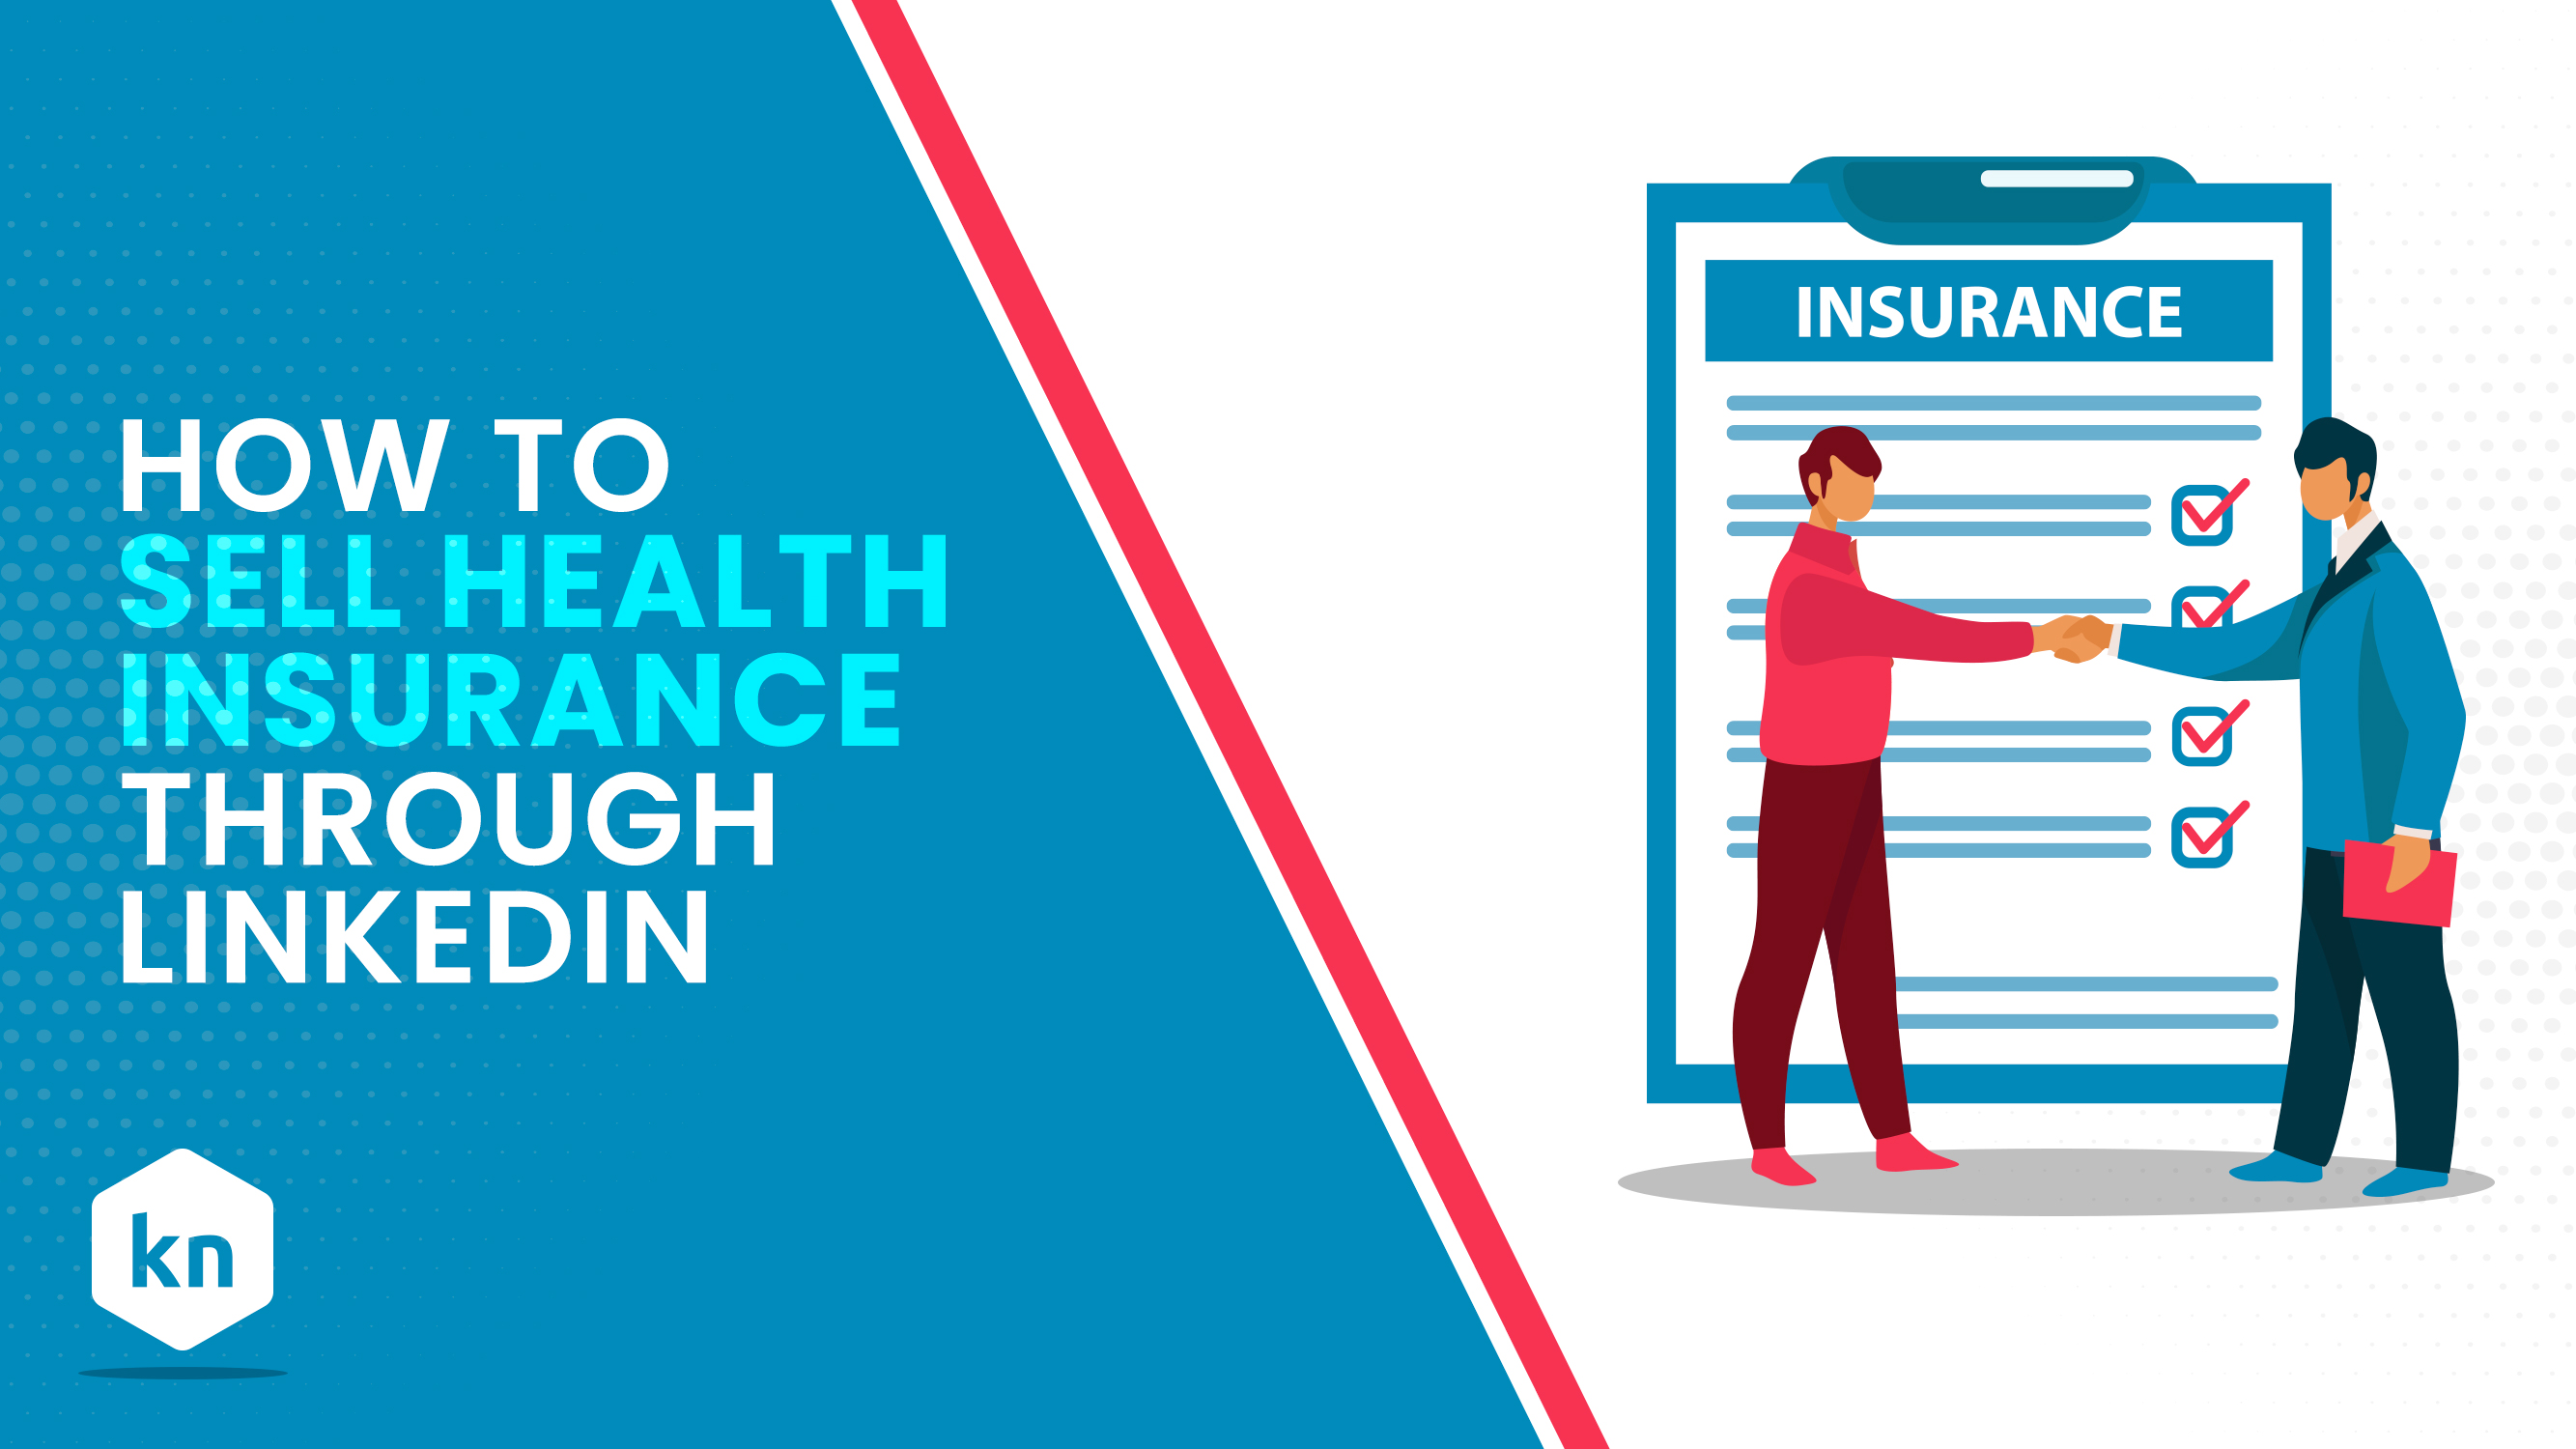 How To Sell Health Insurance Through LinkedIn